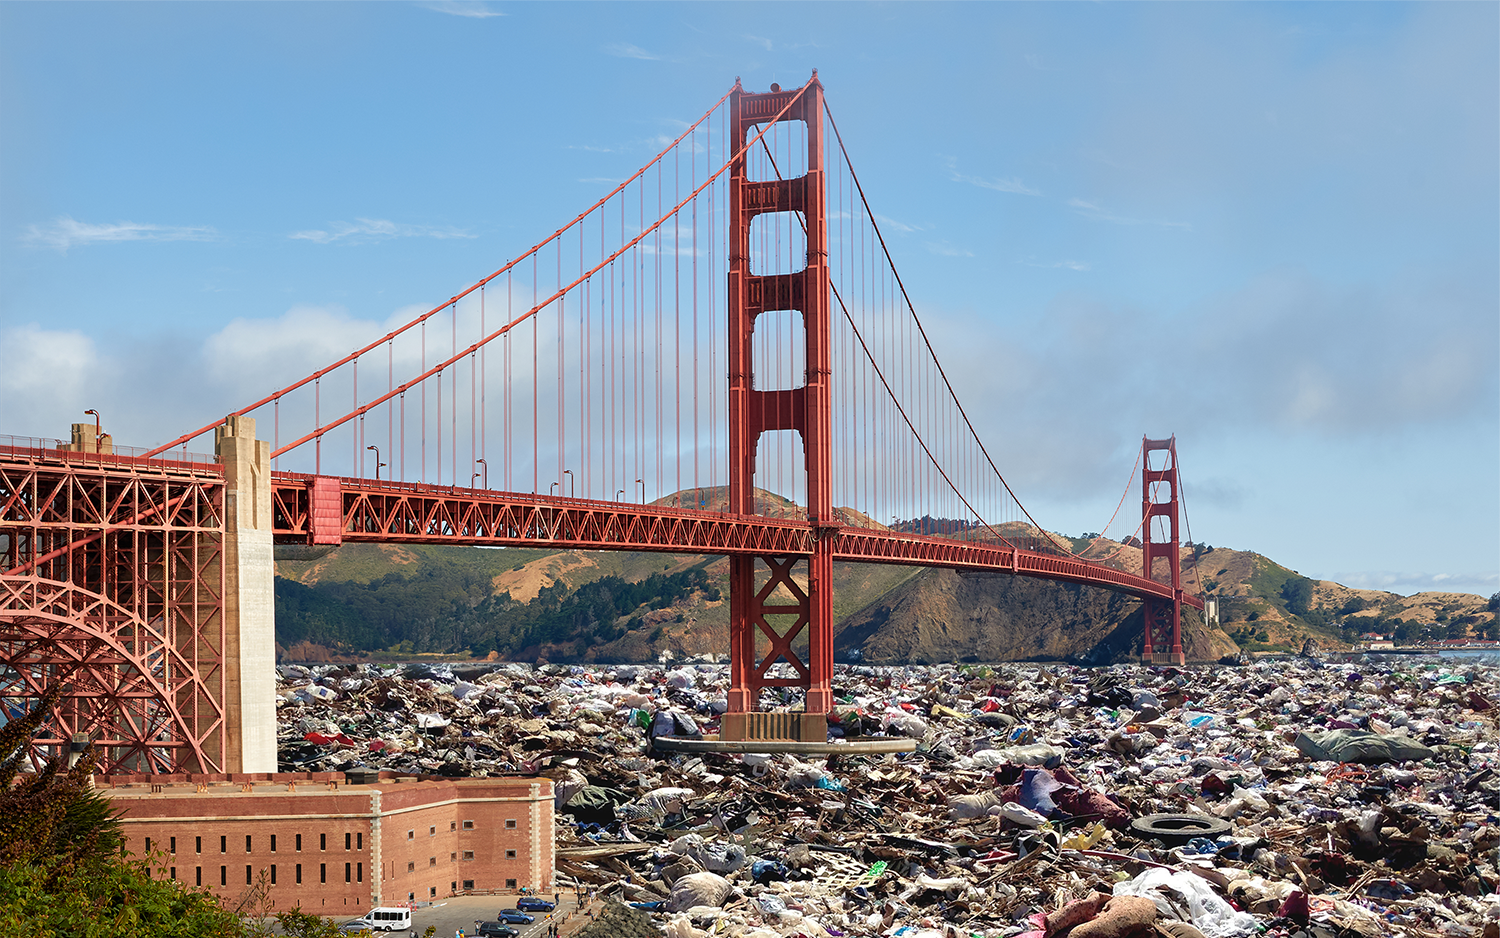 Tourists are drawn in by the Golden Gate Bridge but are welcomed by dirty streets.